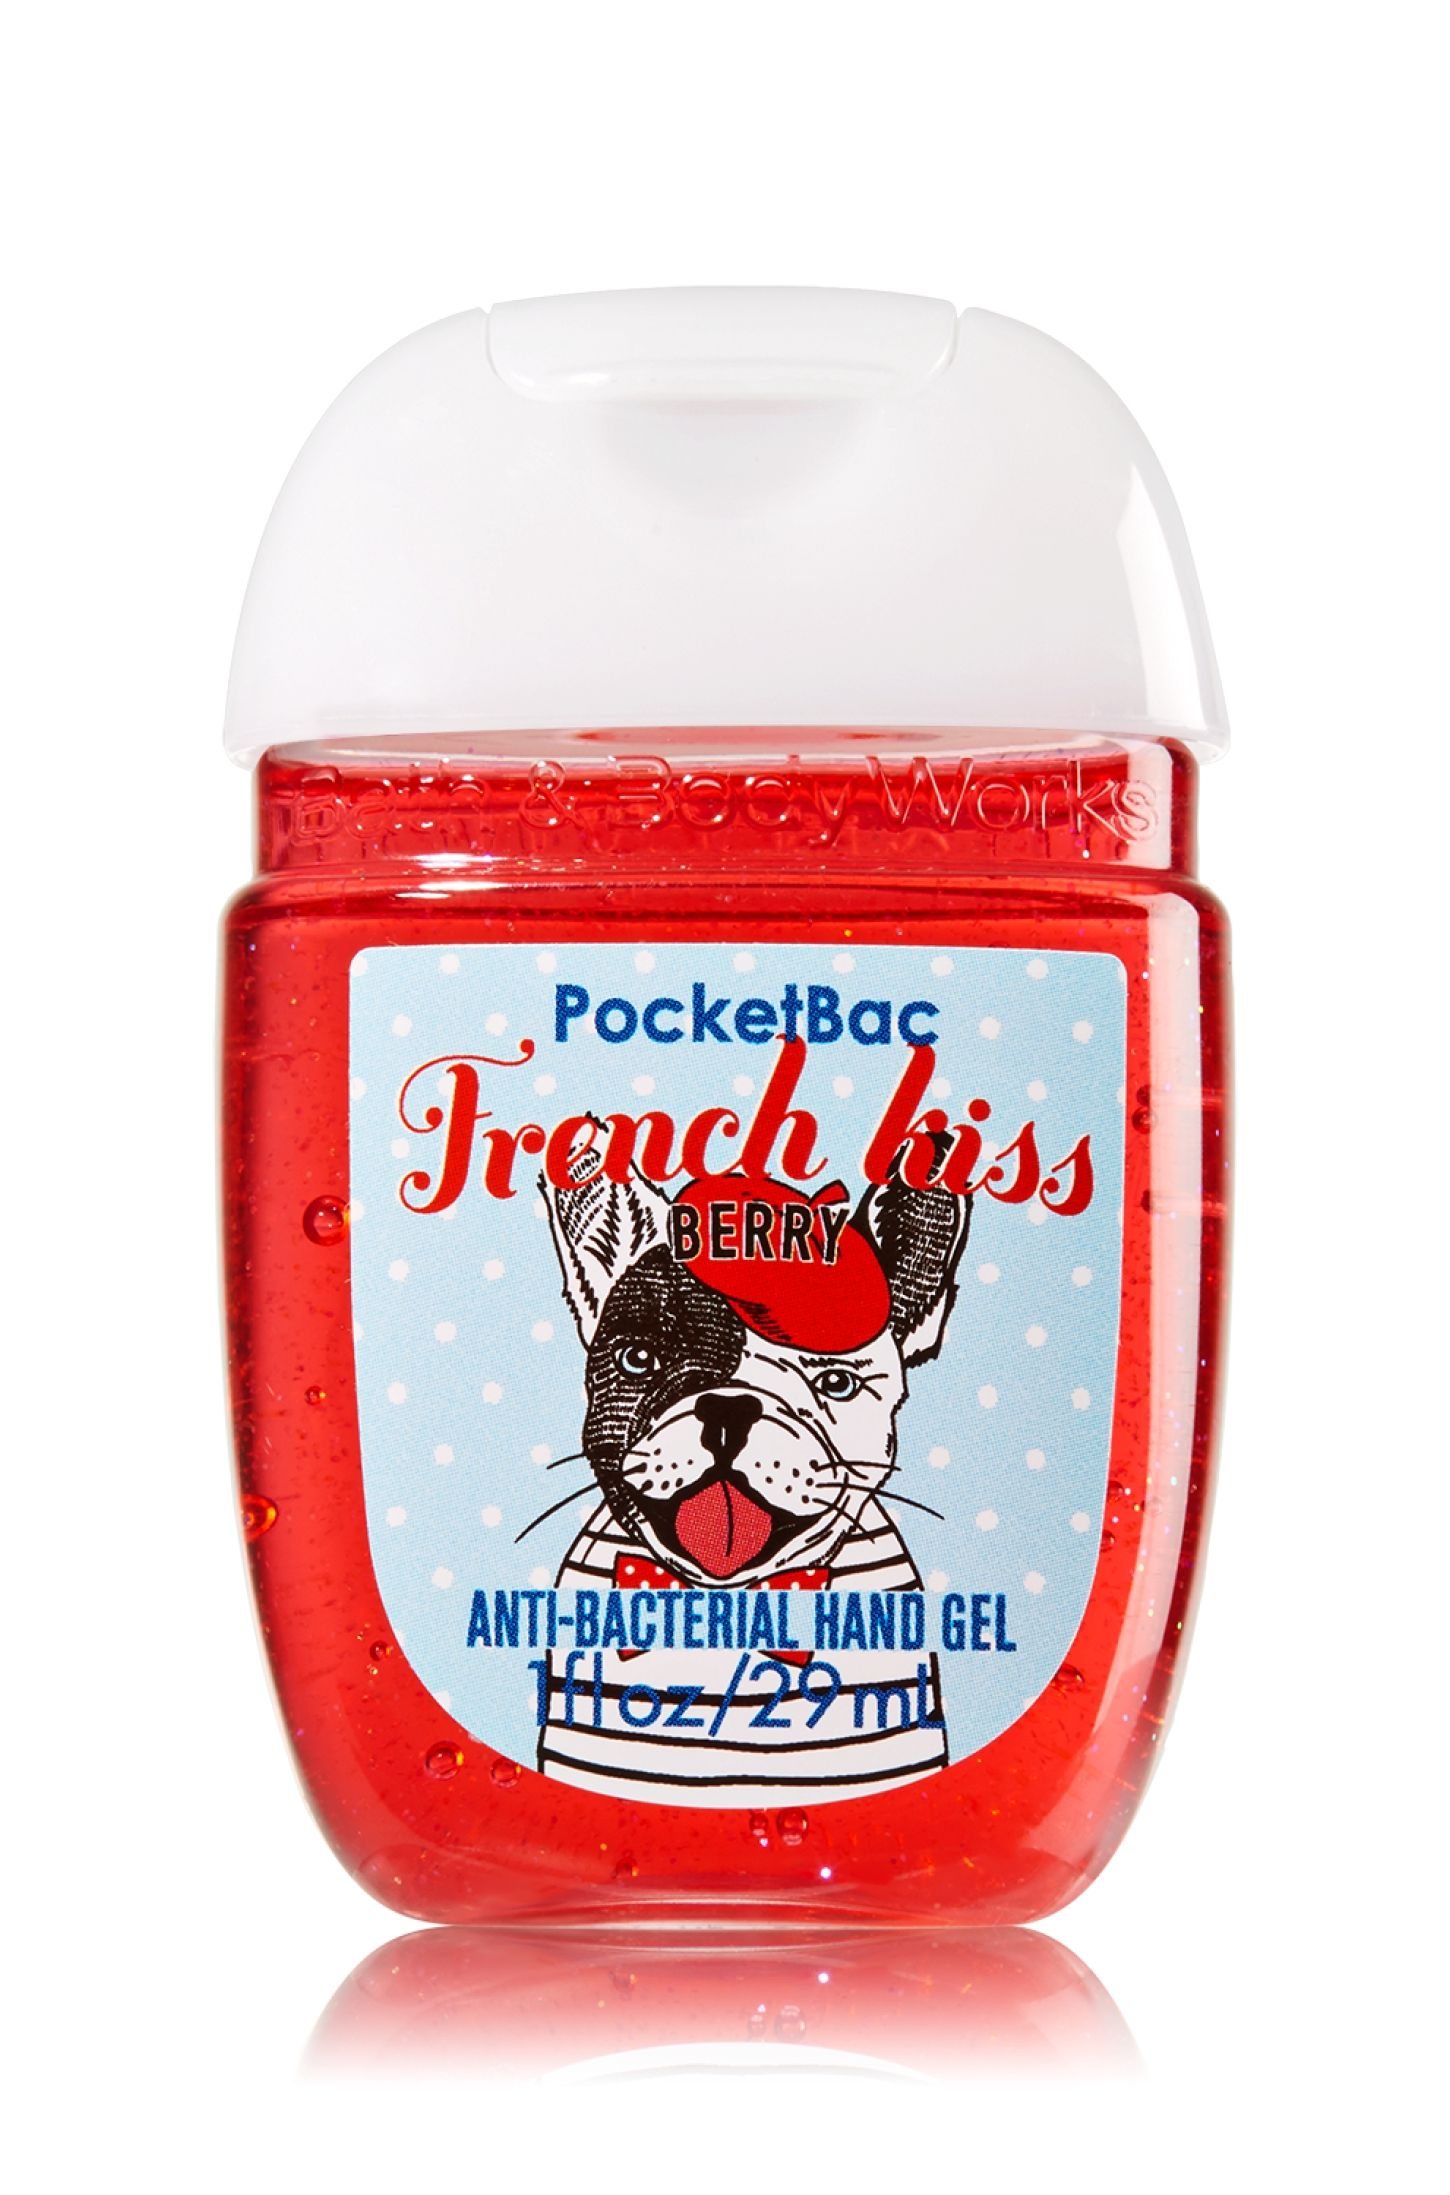 French Kiss Pocketbac Sanitizing Hand Gel Soap Sanitizer Bath